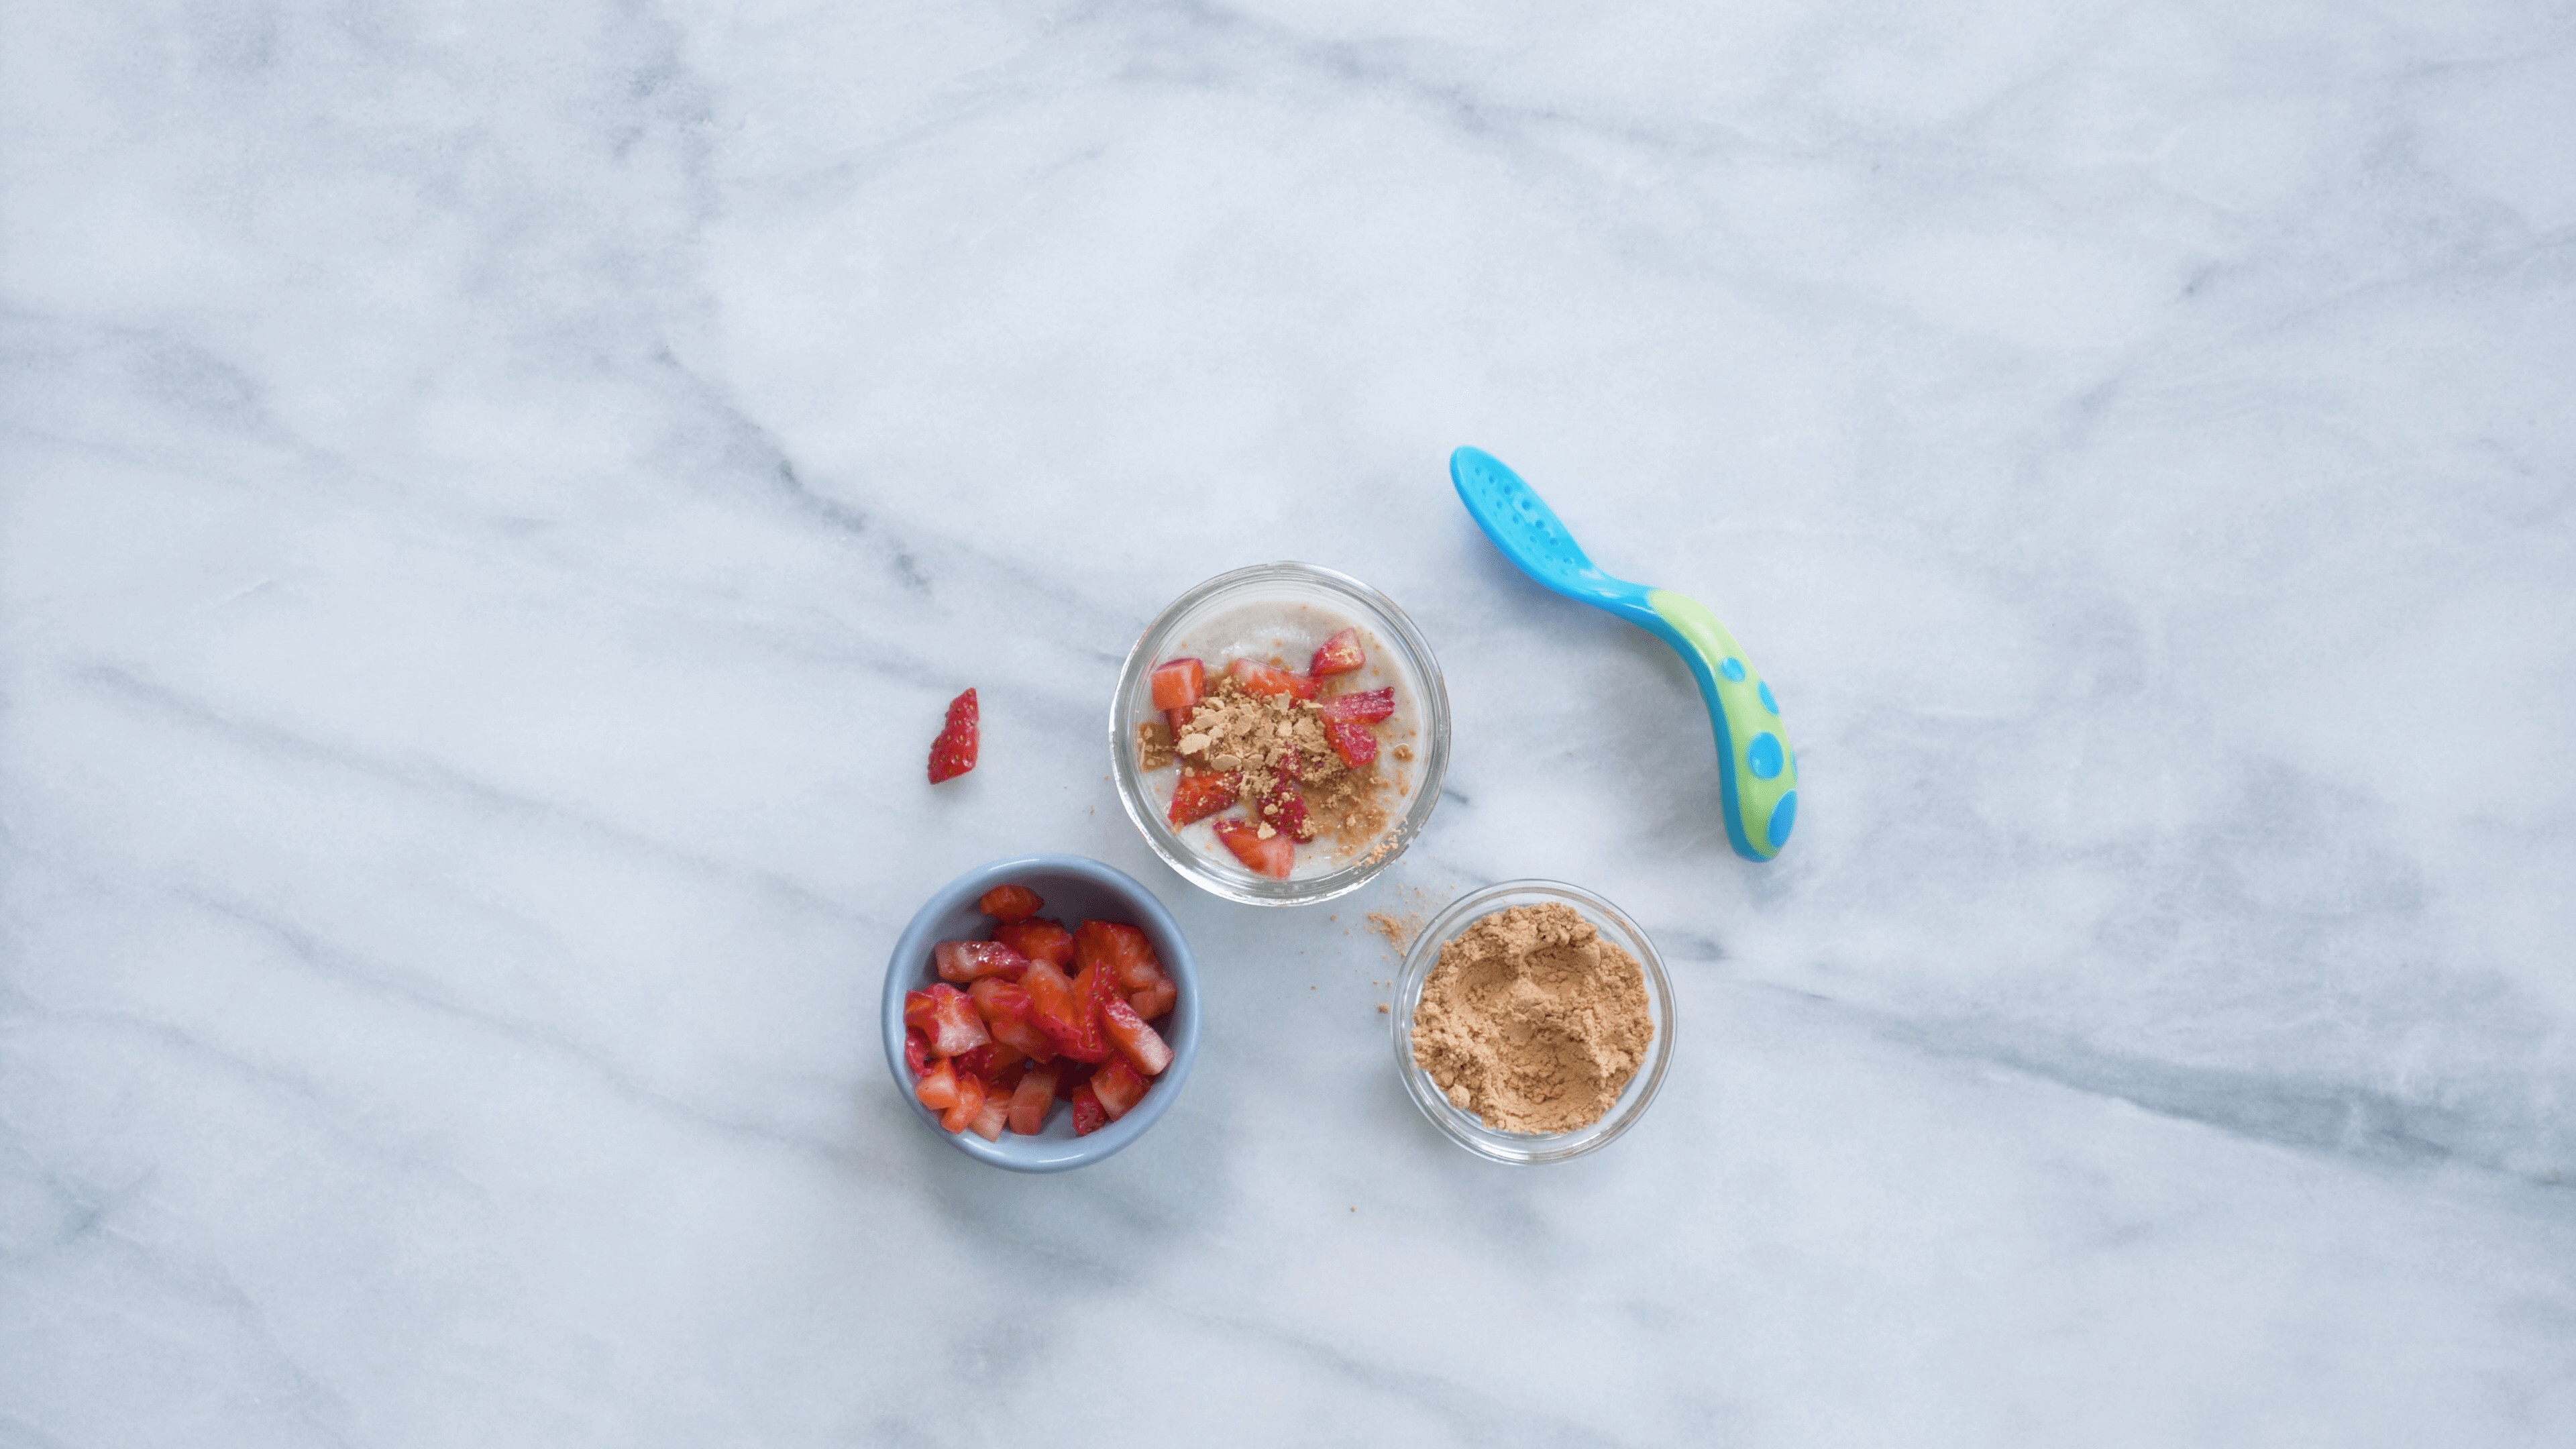 With the latest research suggesting early peanut introduction, we've rounded up 8 ways on how to feed peanut butter to babies. Prepare your favorite baby oatmeal or cereal with strawberries (diced, mashed, or pureed), and sprinkle with a little PB powder. Give it a stir and dunk with a spoon to serve to your baby.